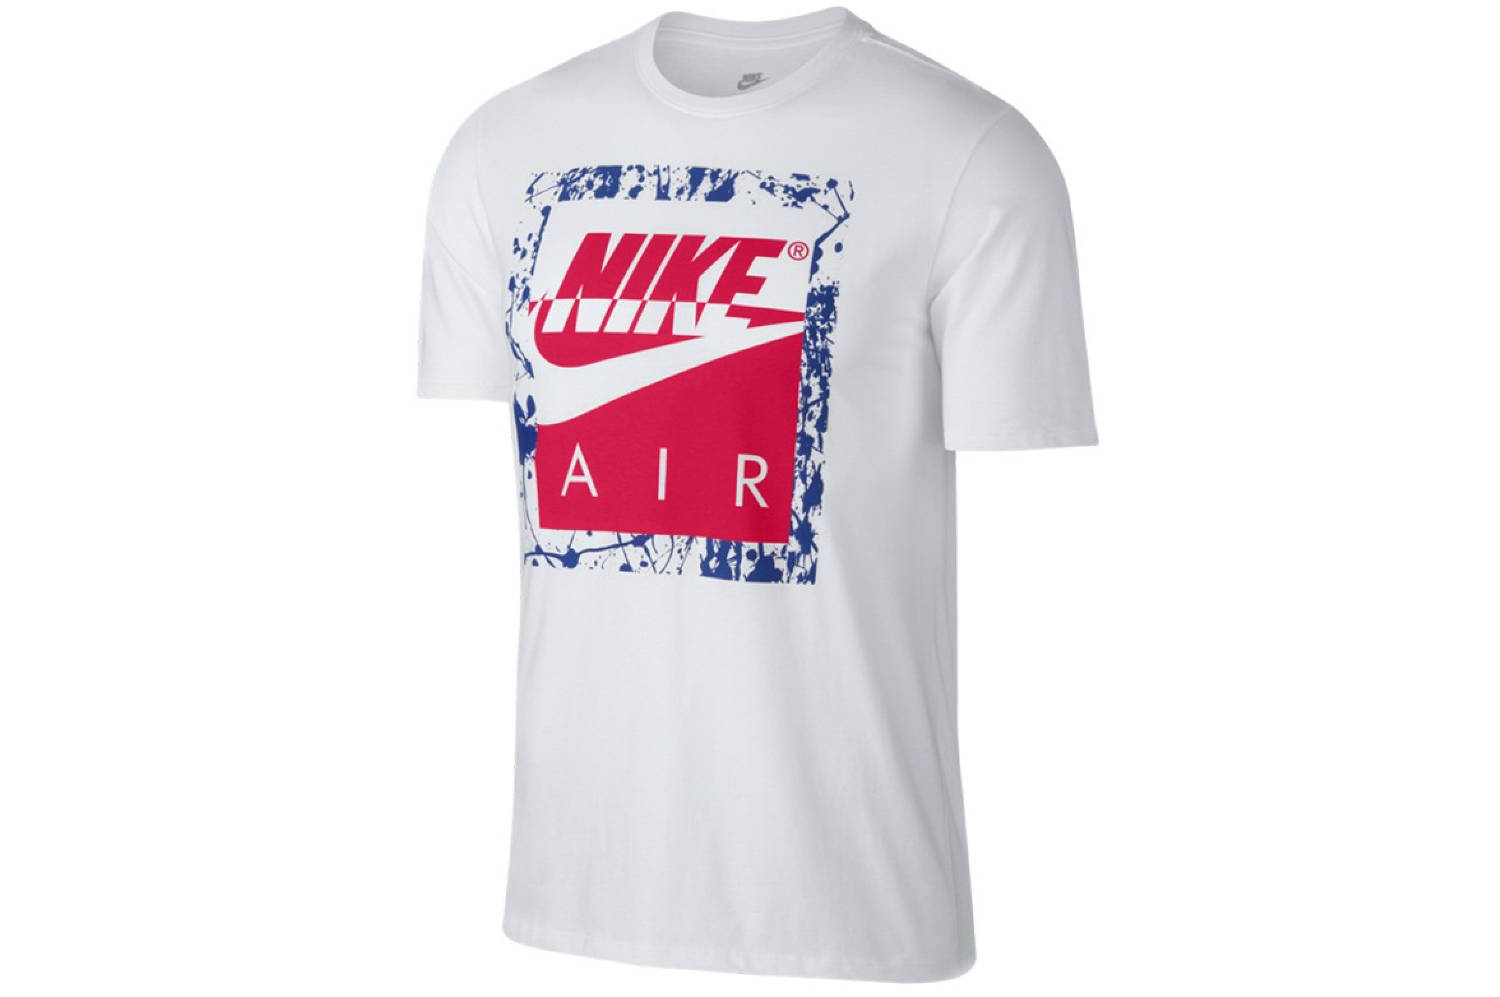 NSW Air T-Shirt - Schrittmacher Shop